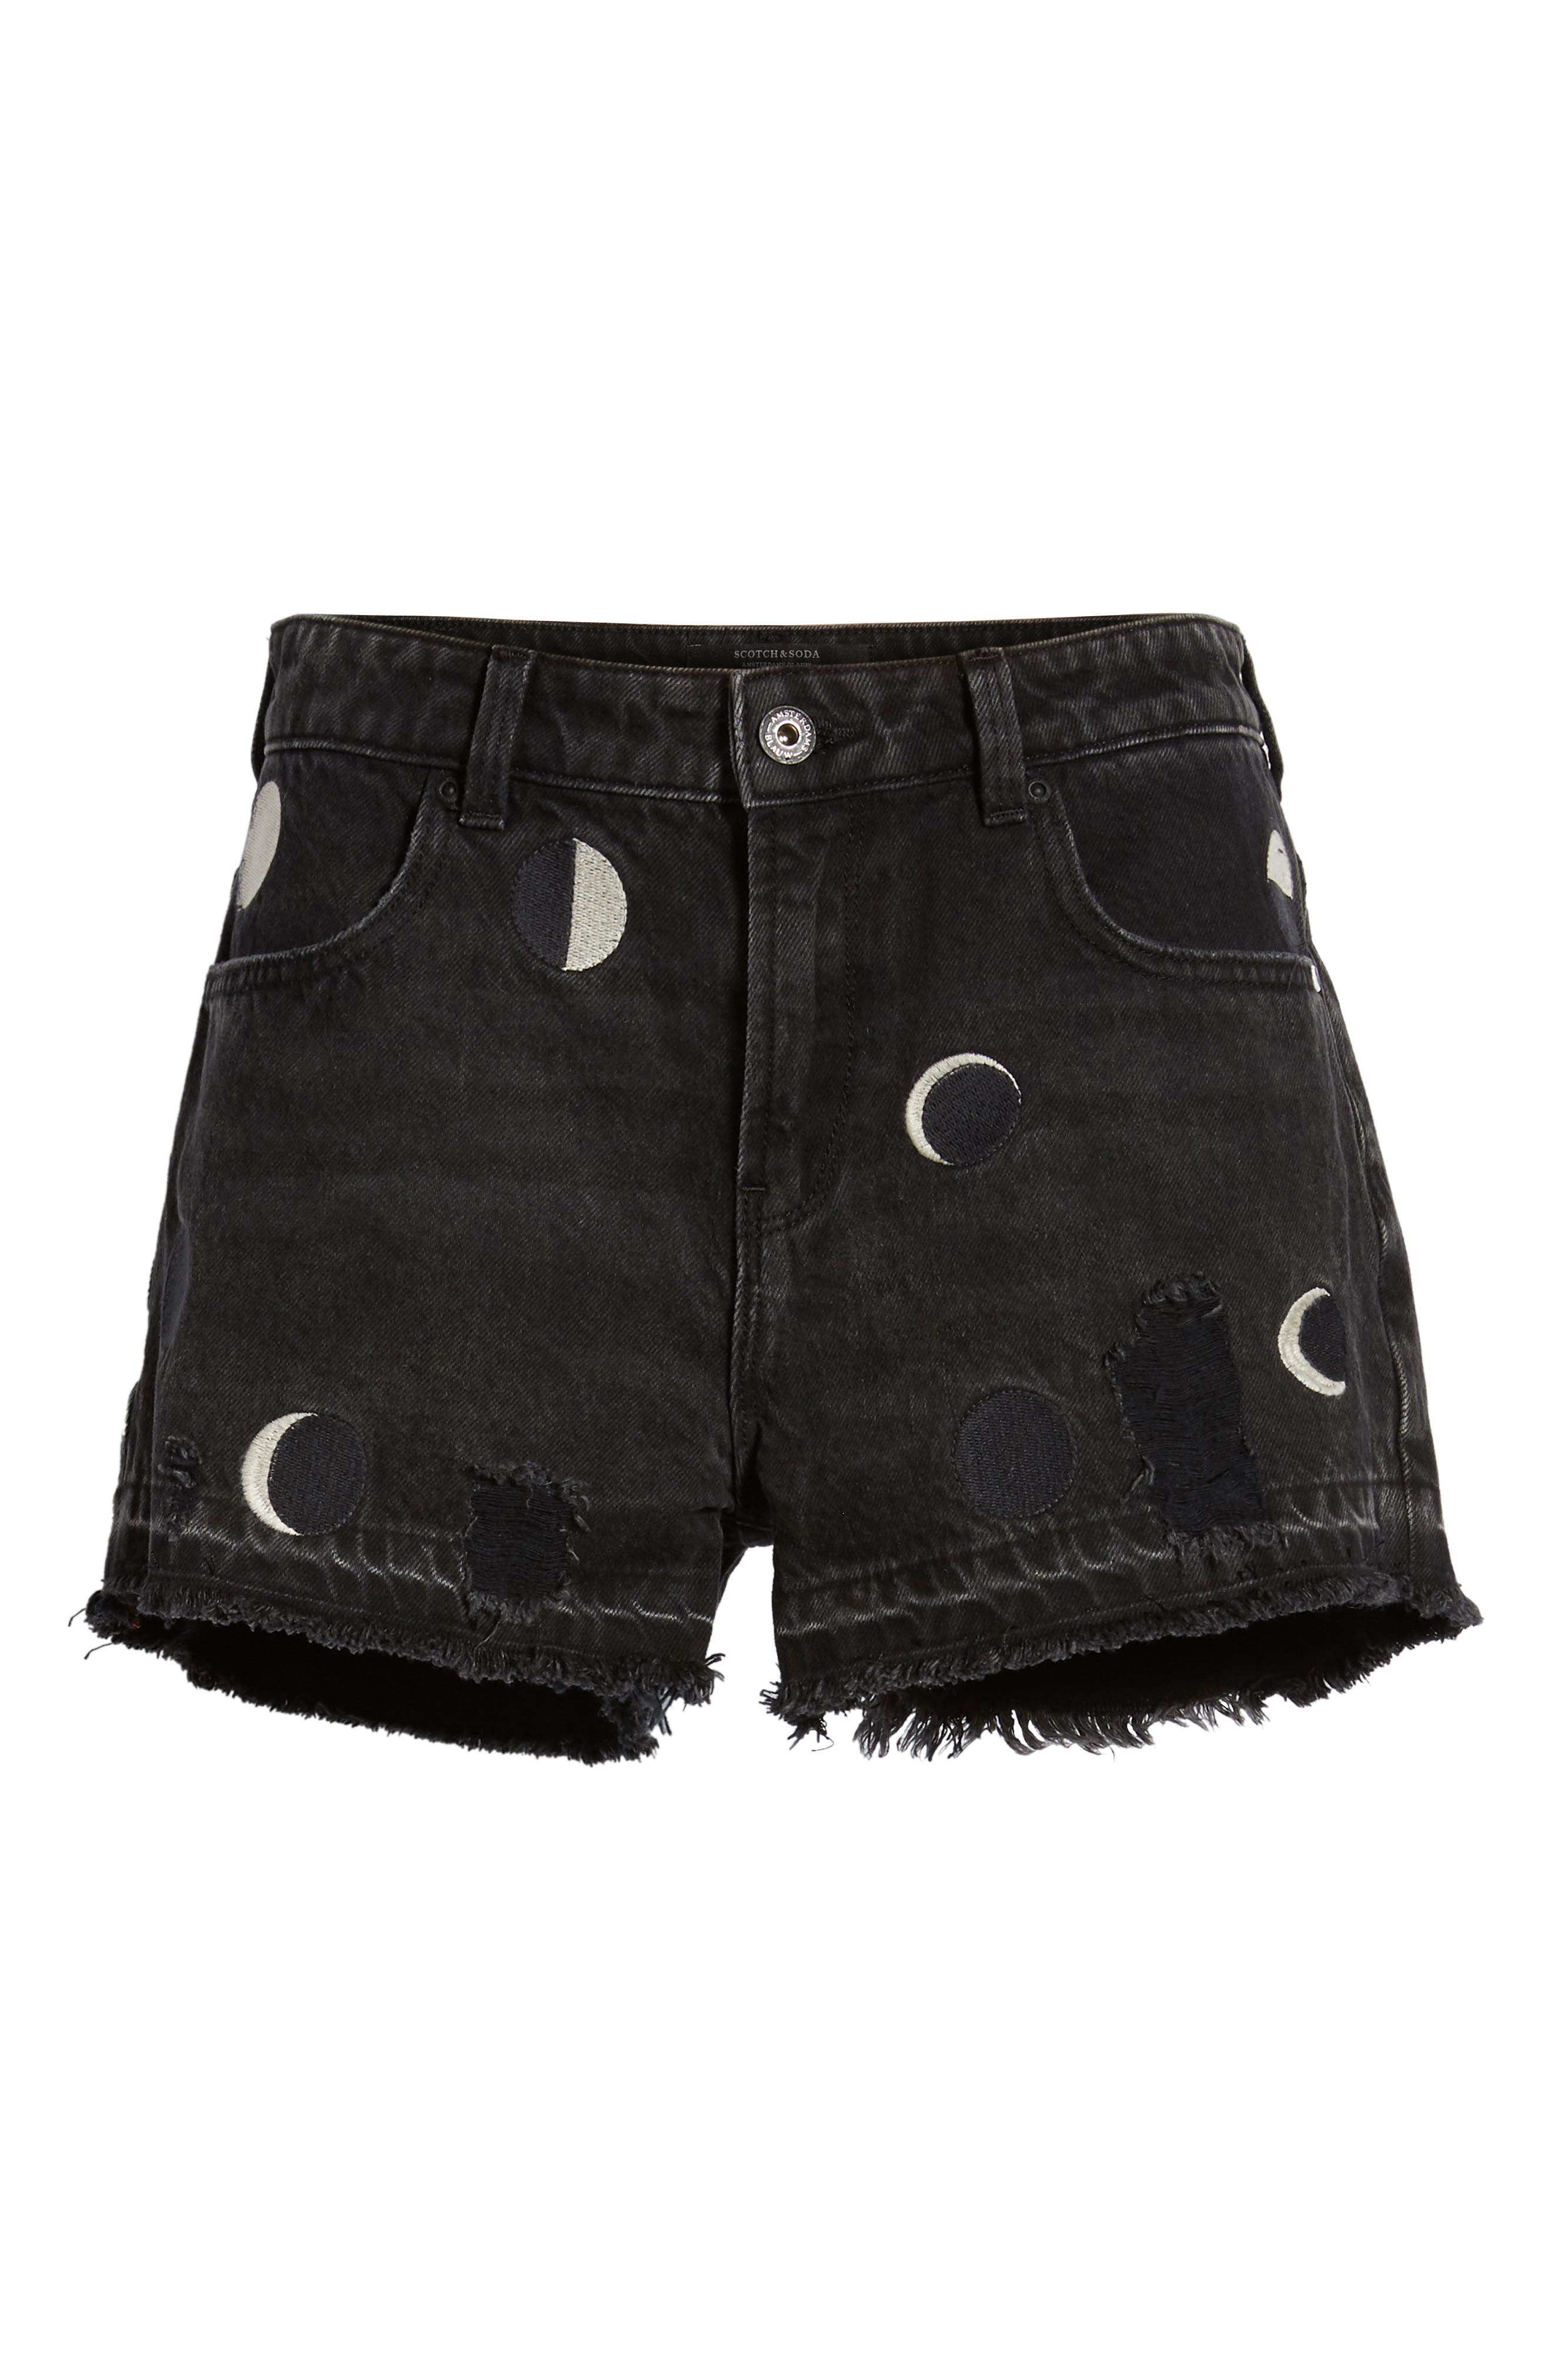 Seasonal Festival Embroidered Denim Shorts,                             Alternate thumbnail 6, color,                             721